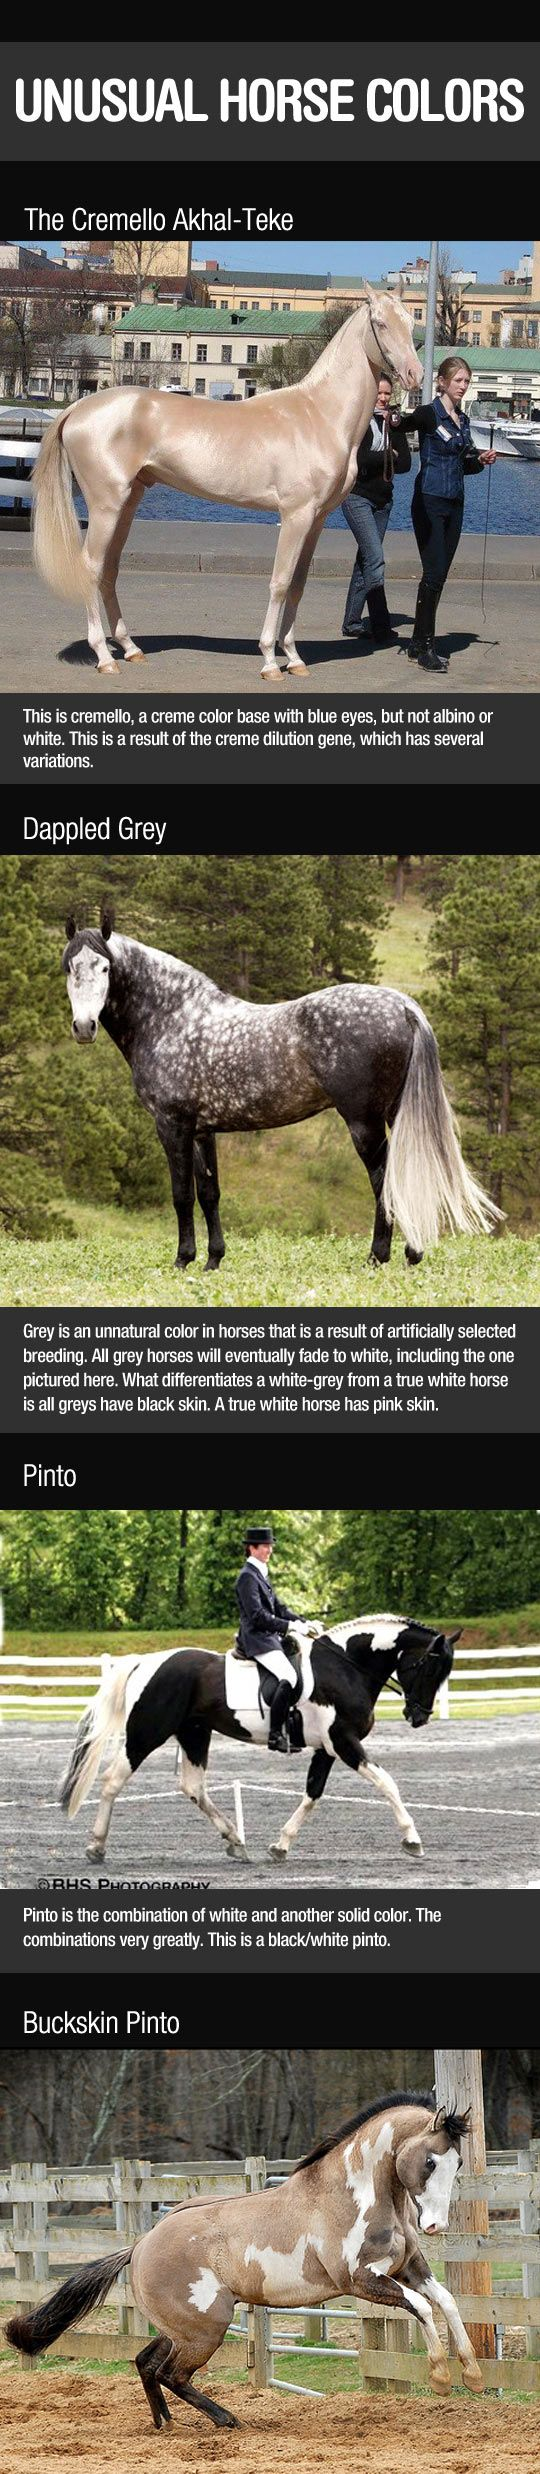 Breathtaking Horse Colors - Click picture once to see many more.